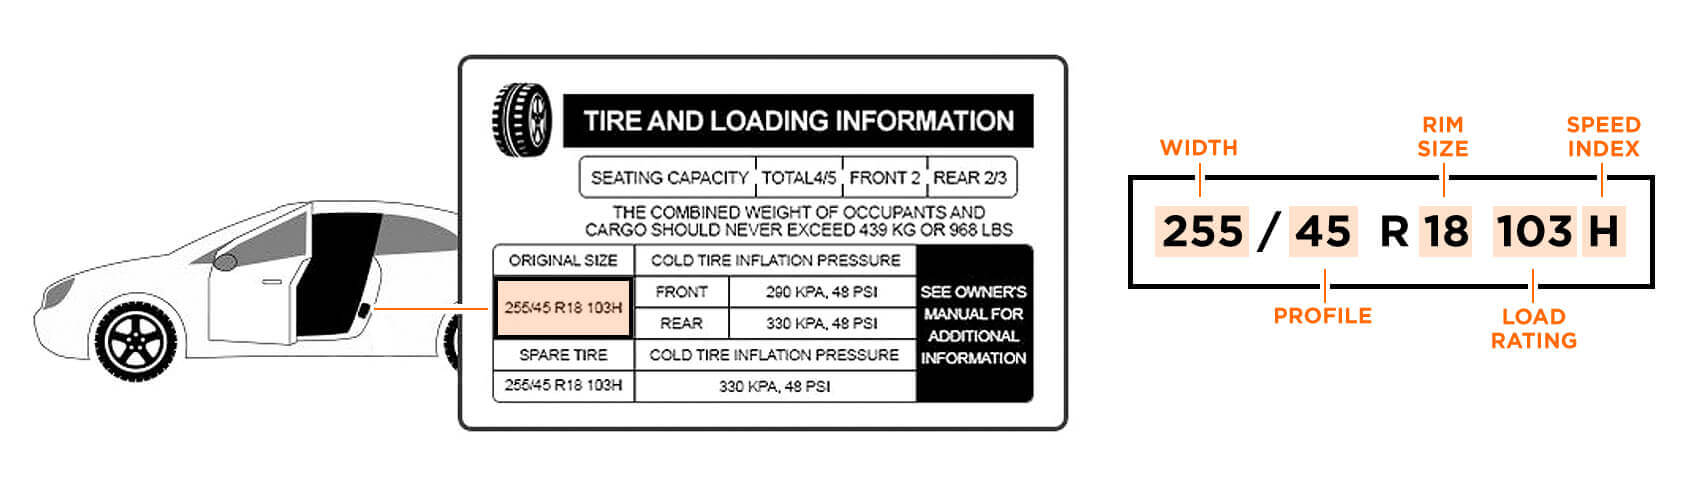 hight resolution of how to find your tire size and rating